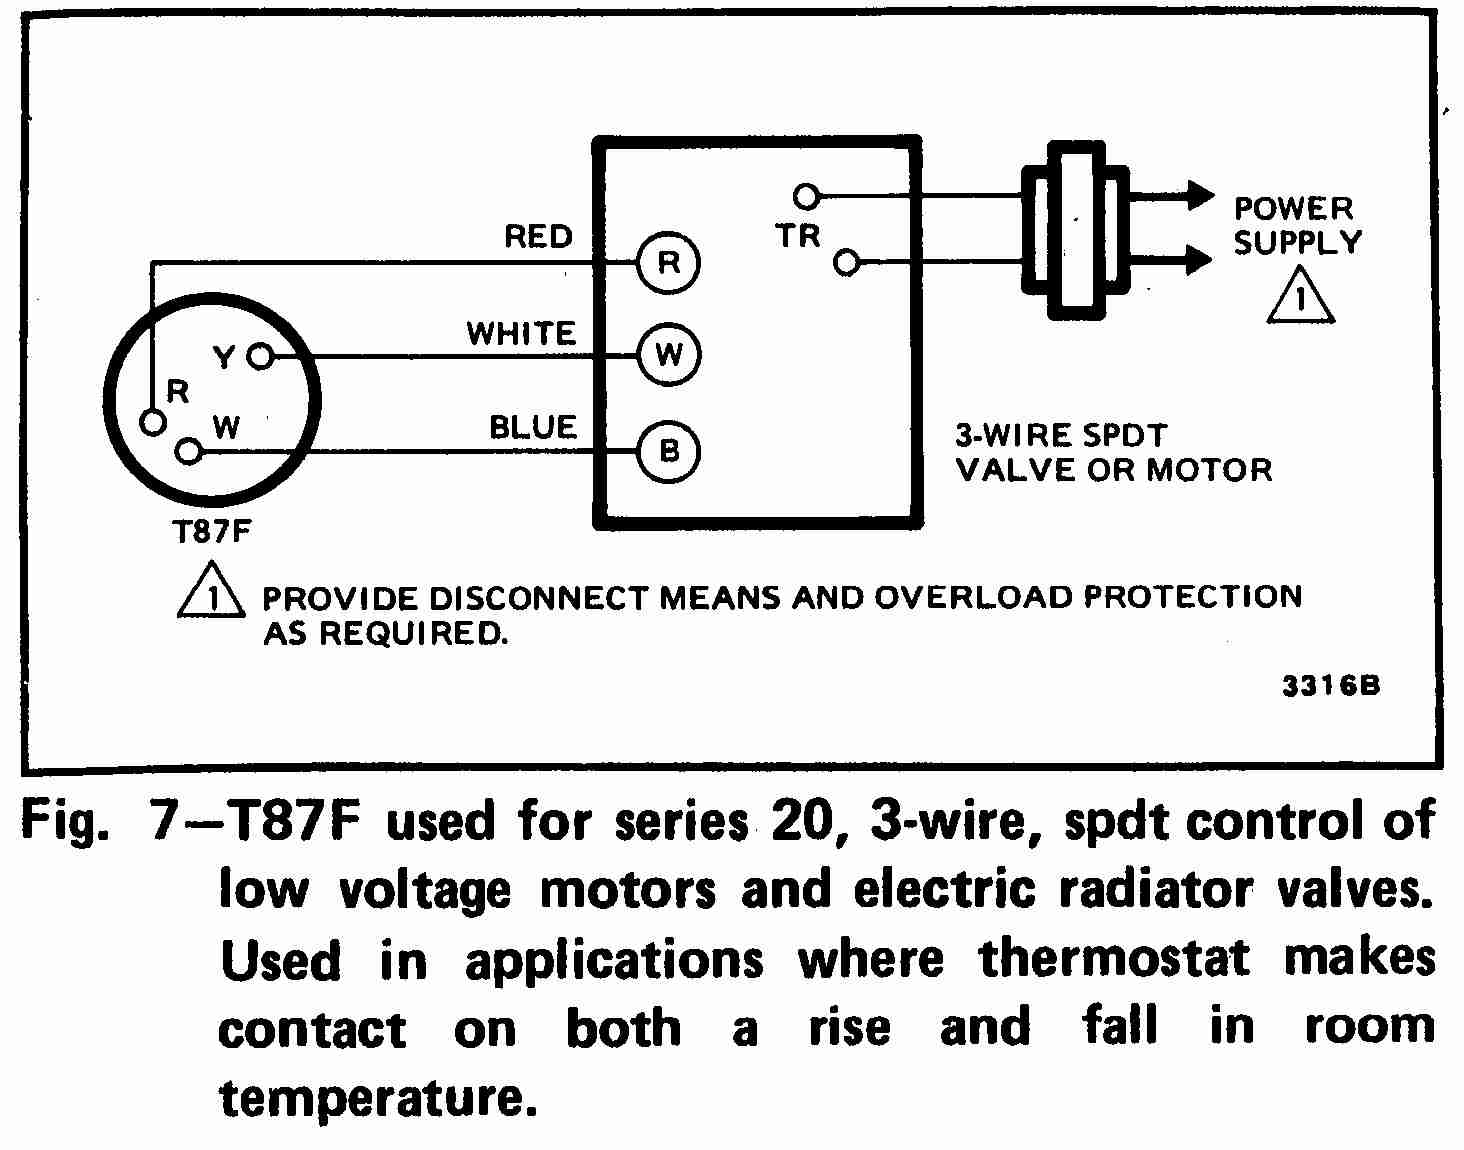 TT_T87F_0002_3W2_DJF room thermostat wiring diagrams for hvac systems fcu wiring diagram at webbmarketing.co